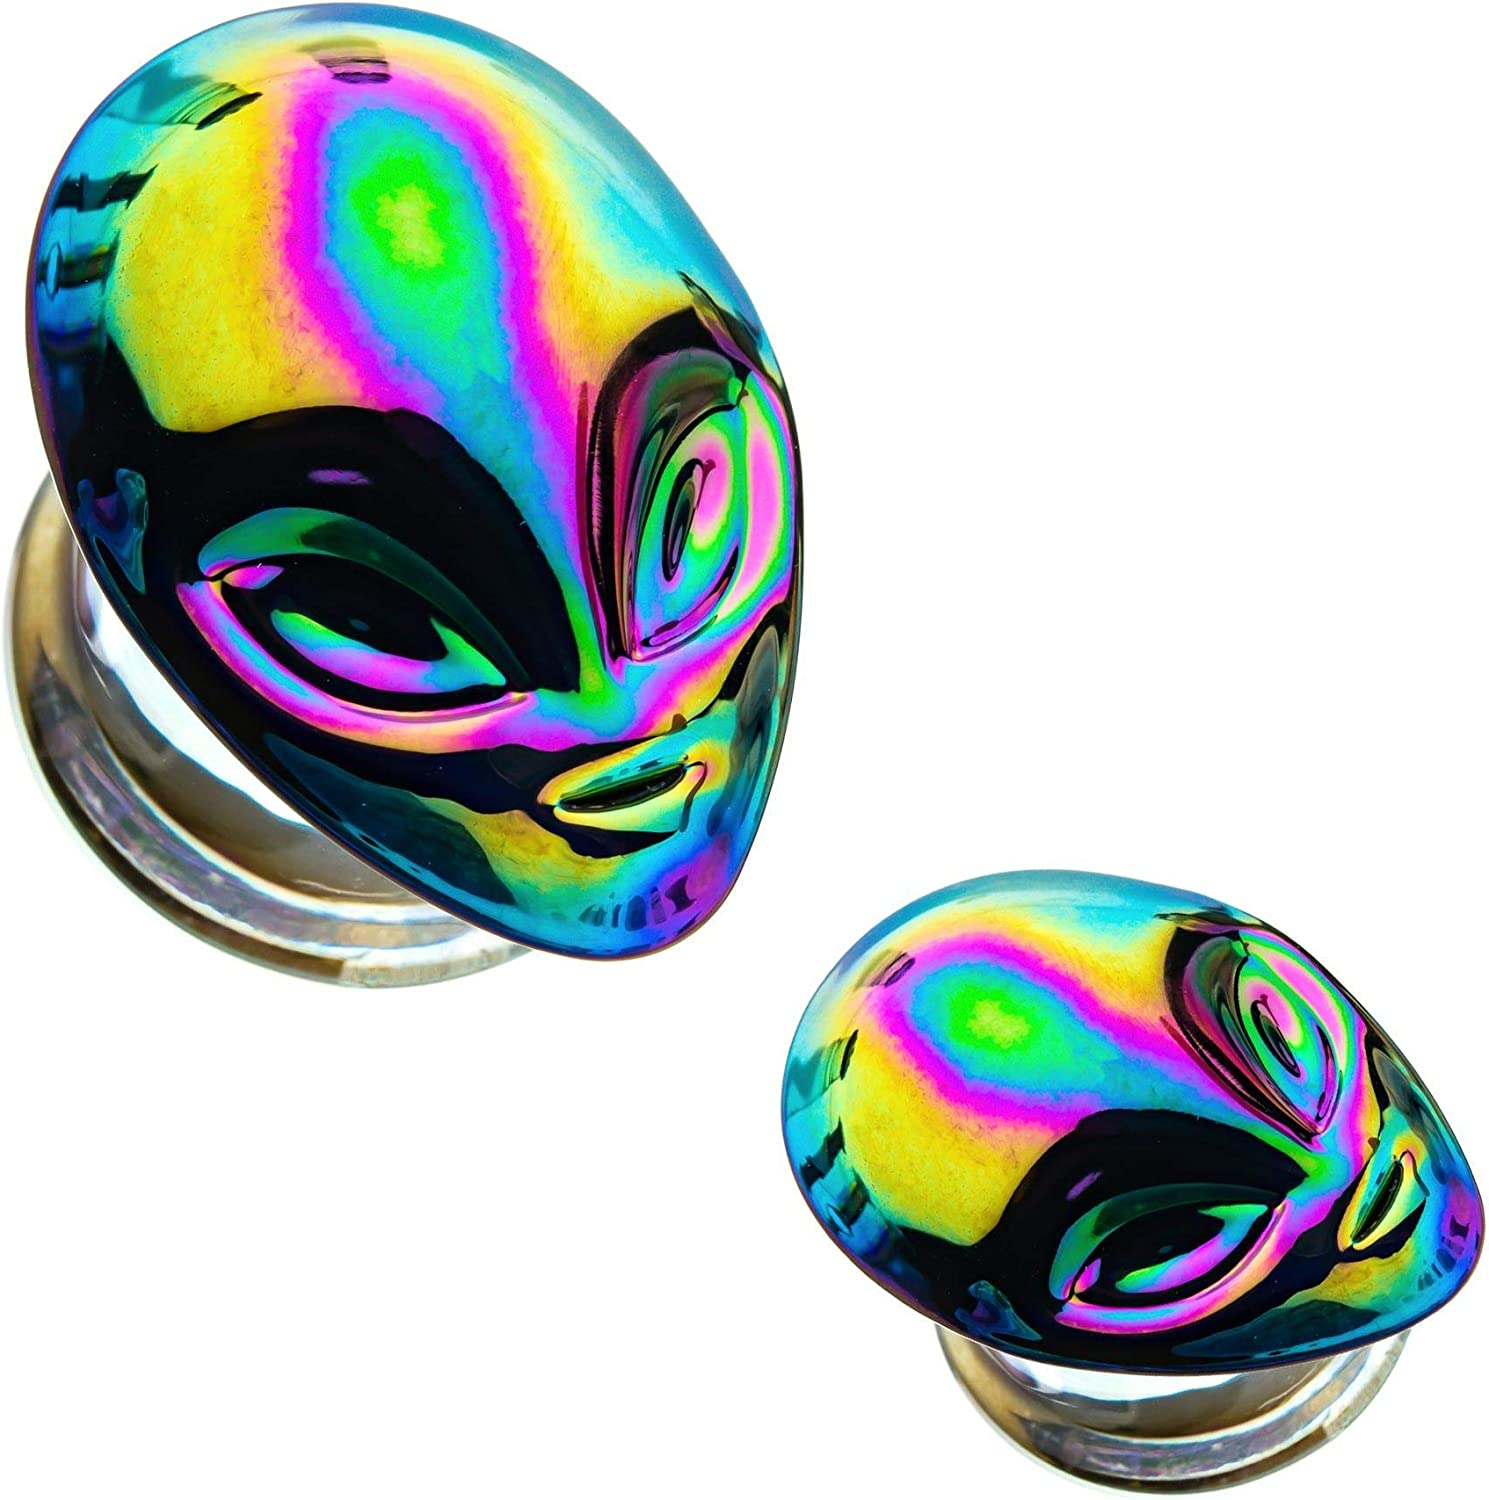 """Details about  /PAIR-Galaxy Purple 2-Sided Acrylic Double Flare Ear Plugs 25mm//1/"""" Gauge Body Je"""